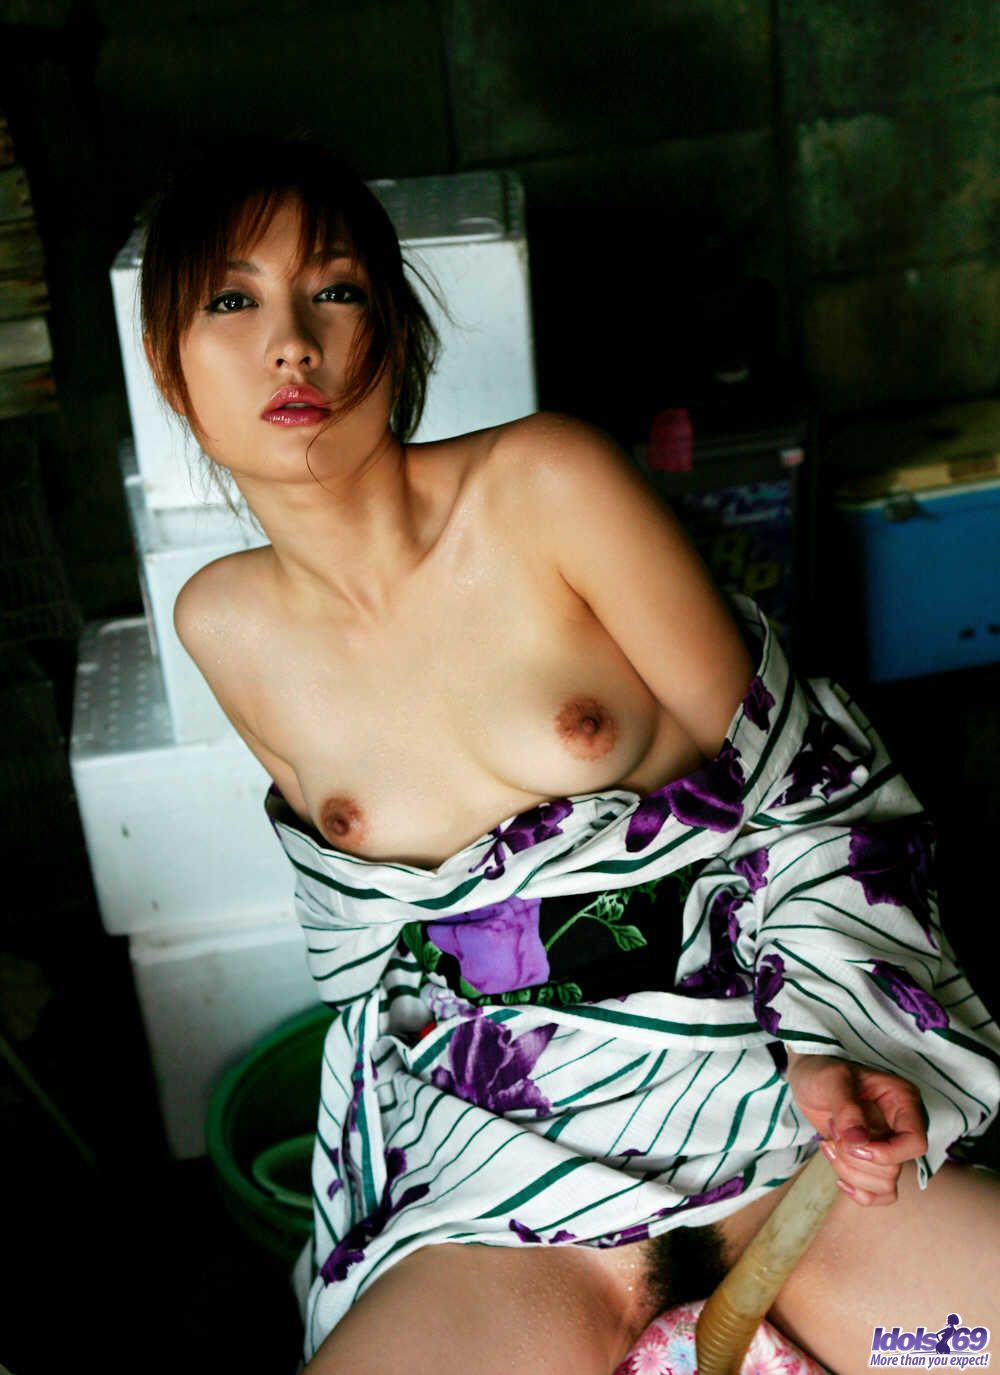 naughty girl kimono pulls up her dress and shows her big ass at